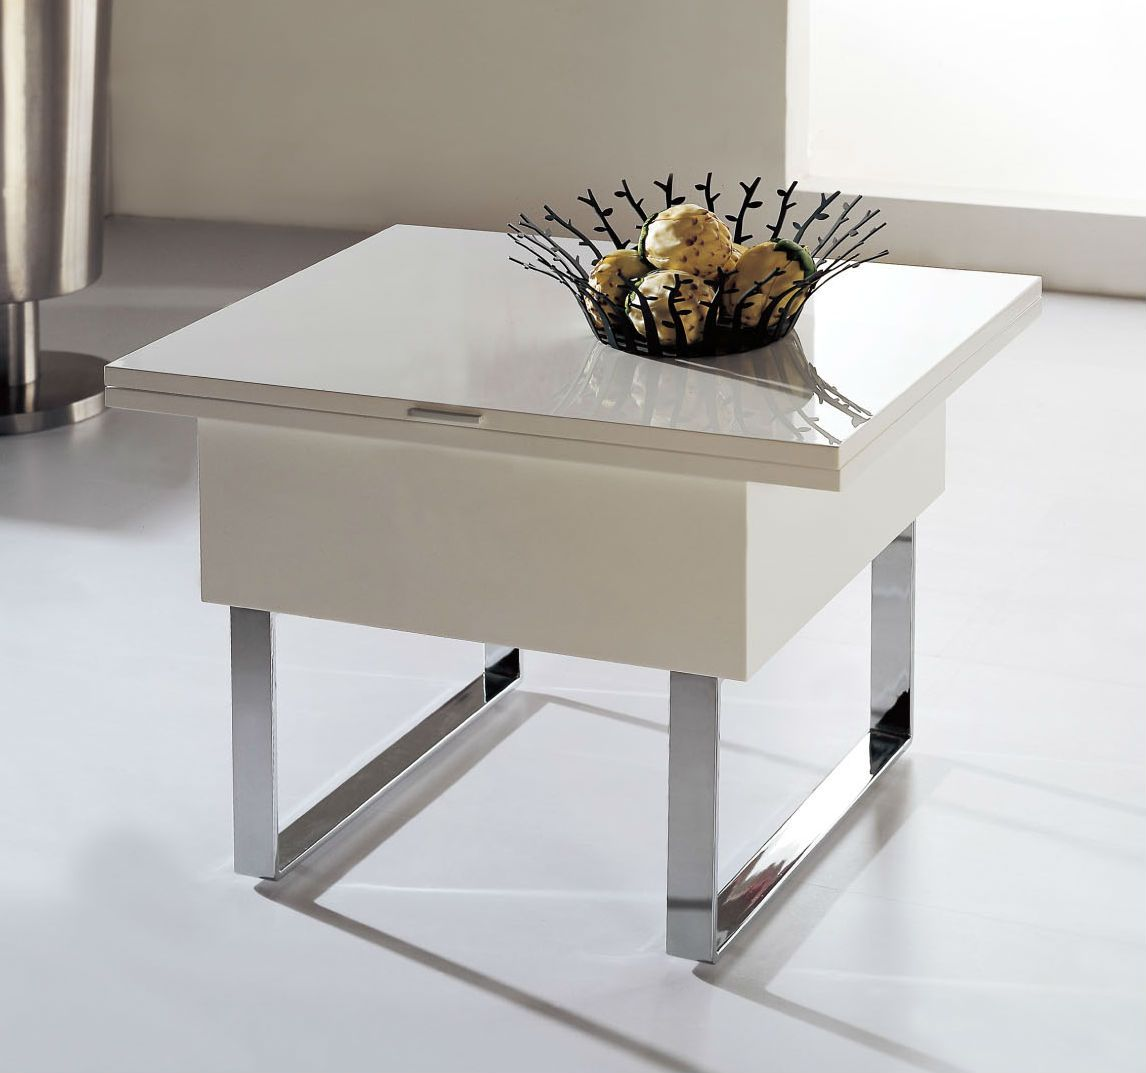 Space Savers Furniture space saving table converts from a coffee tableday into a